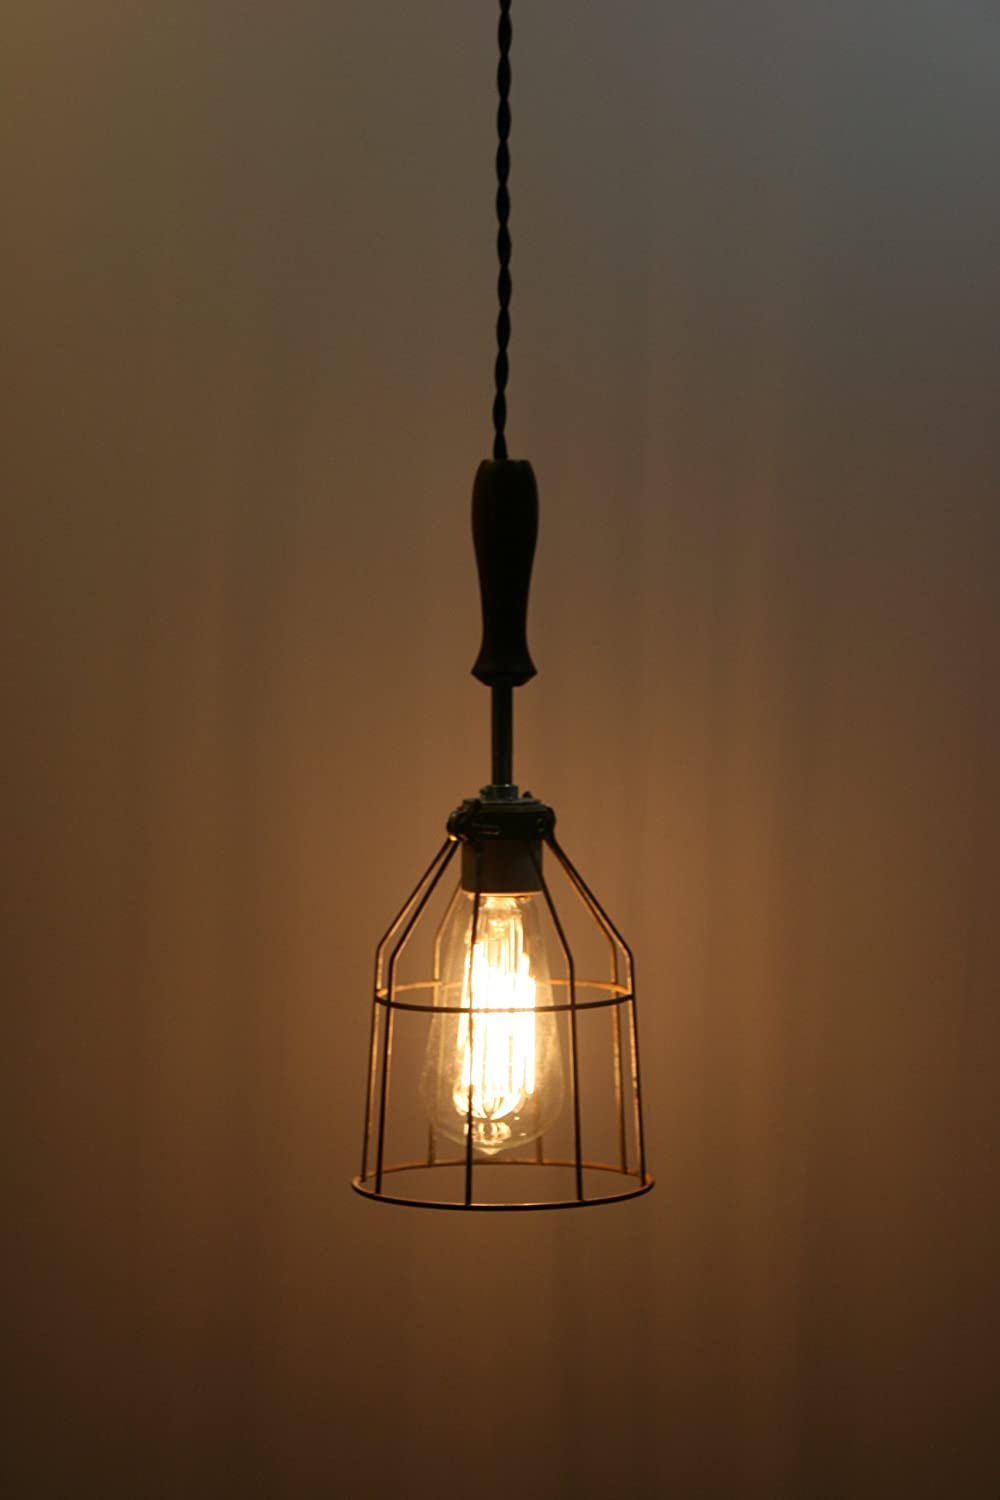 Industrial Hanging Pendant Light With Wood Handle And Vintage Style Wire  Cage Guard   Hanging Lamp   Built By Hand In The USA By Industrial Rewind    Ceiling ...